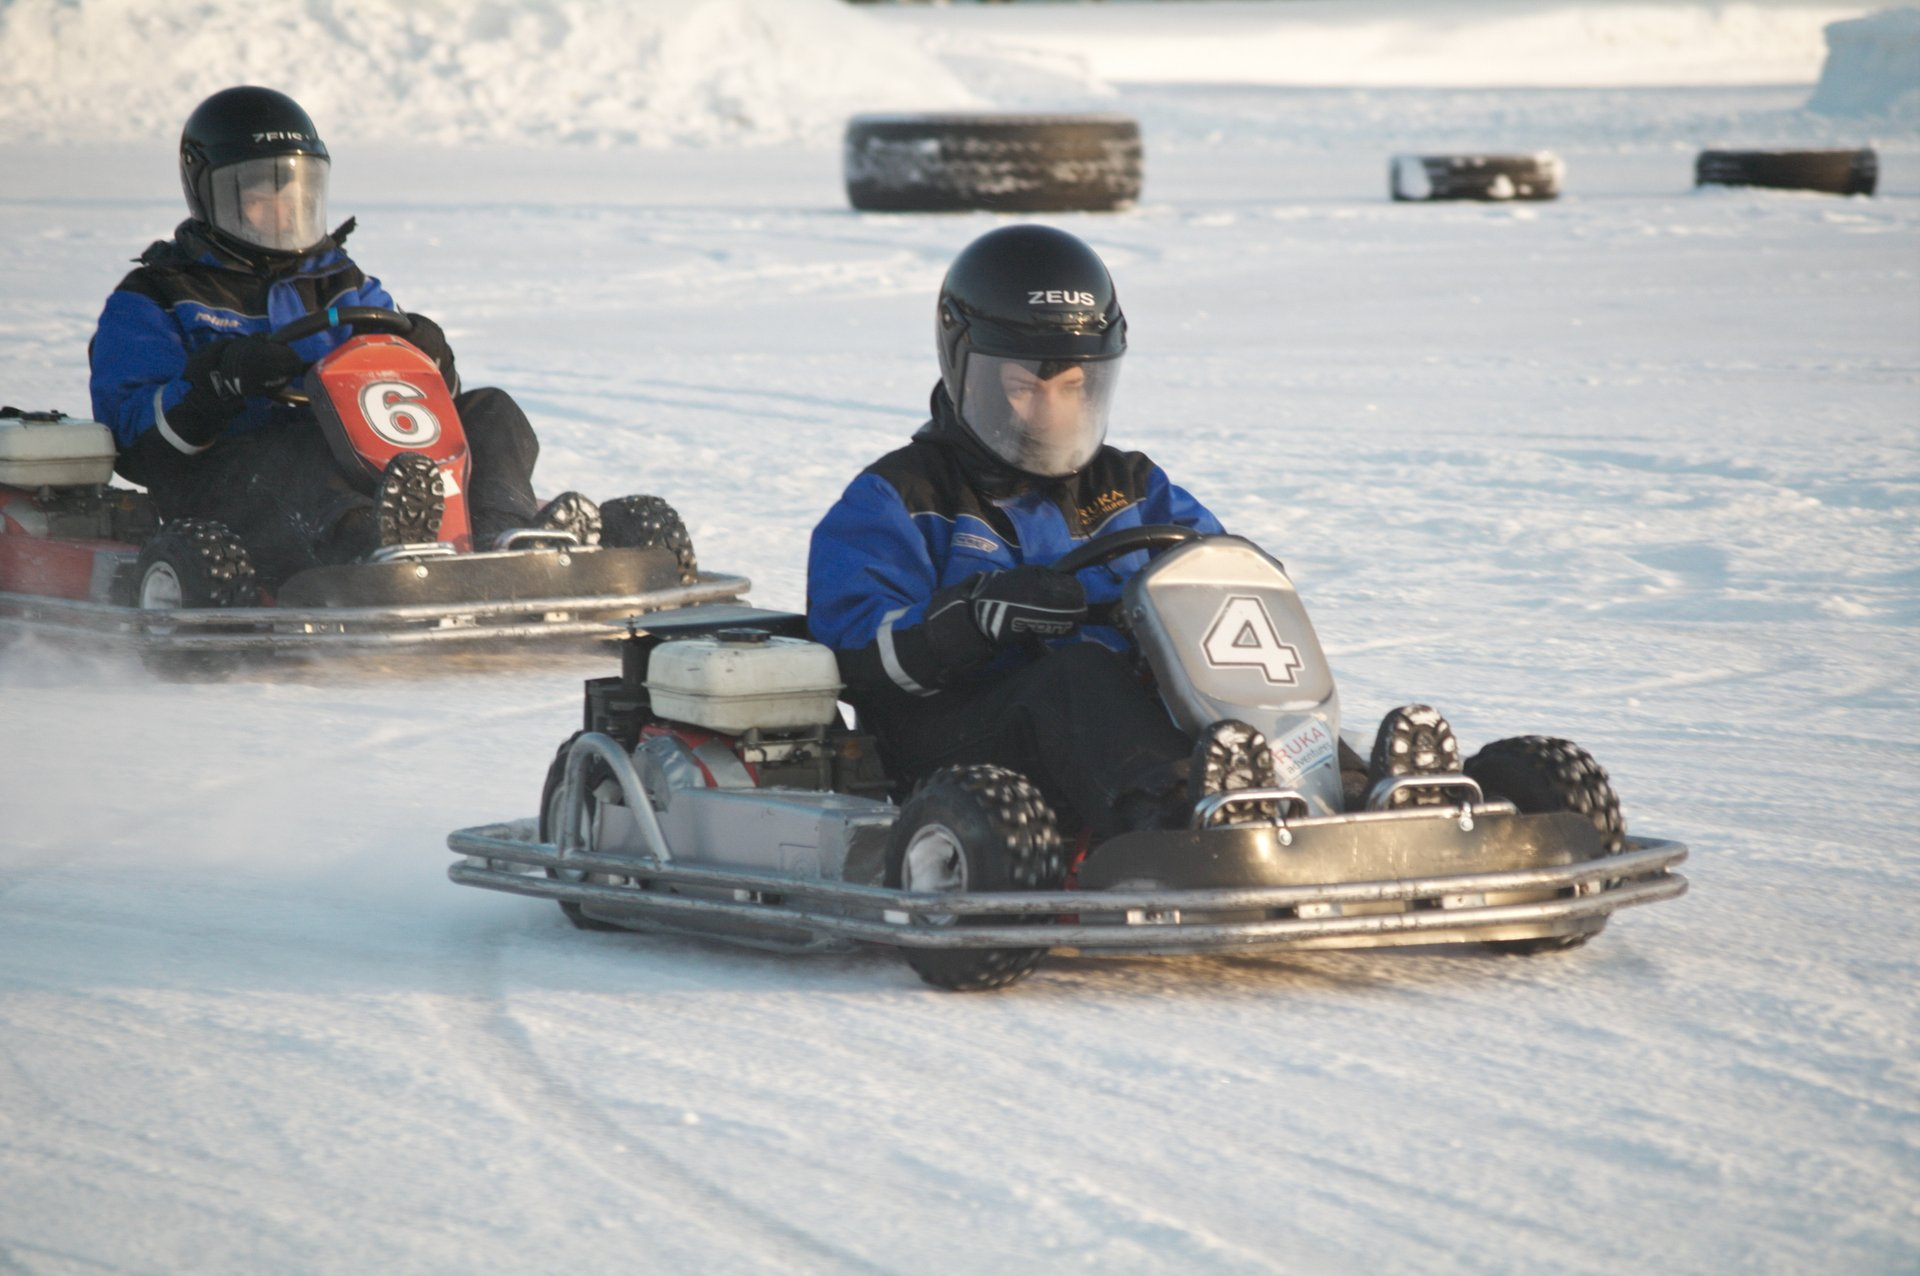 Ice Karting in Finland 2019 - Best Time